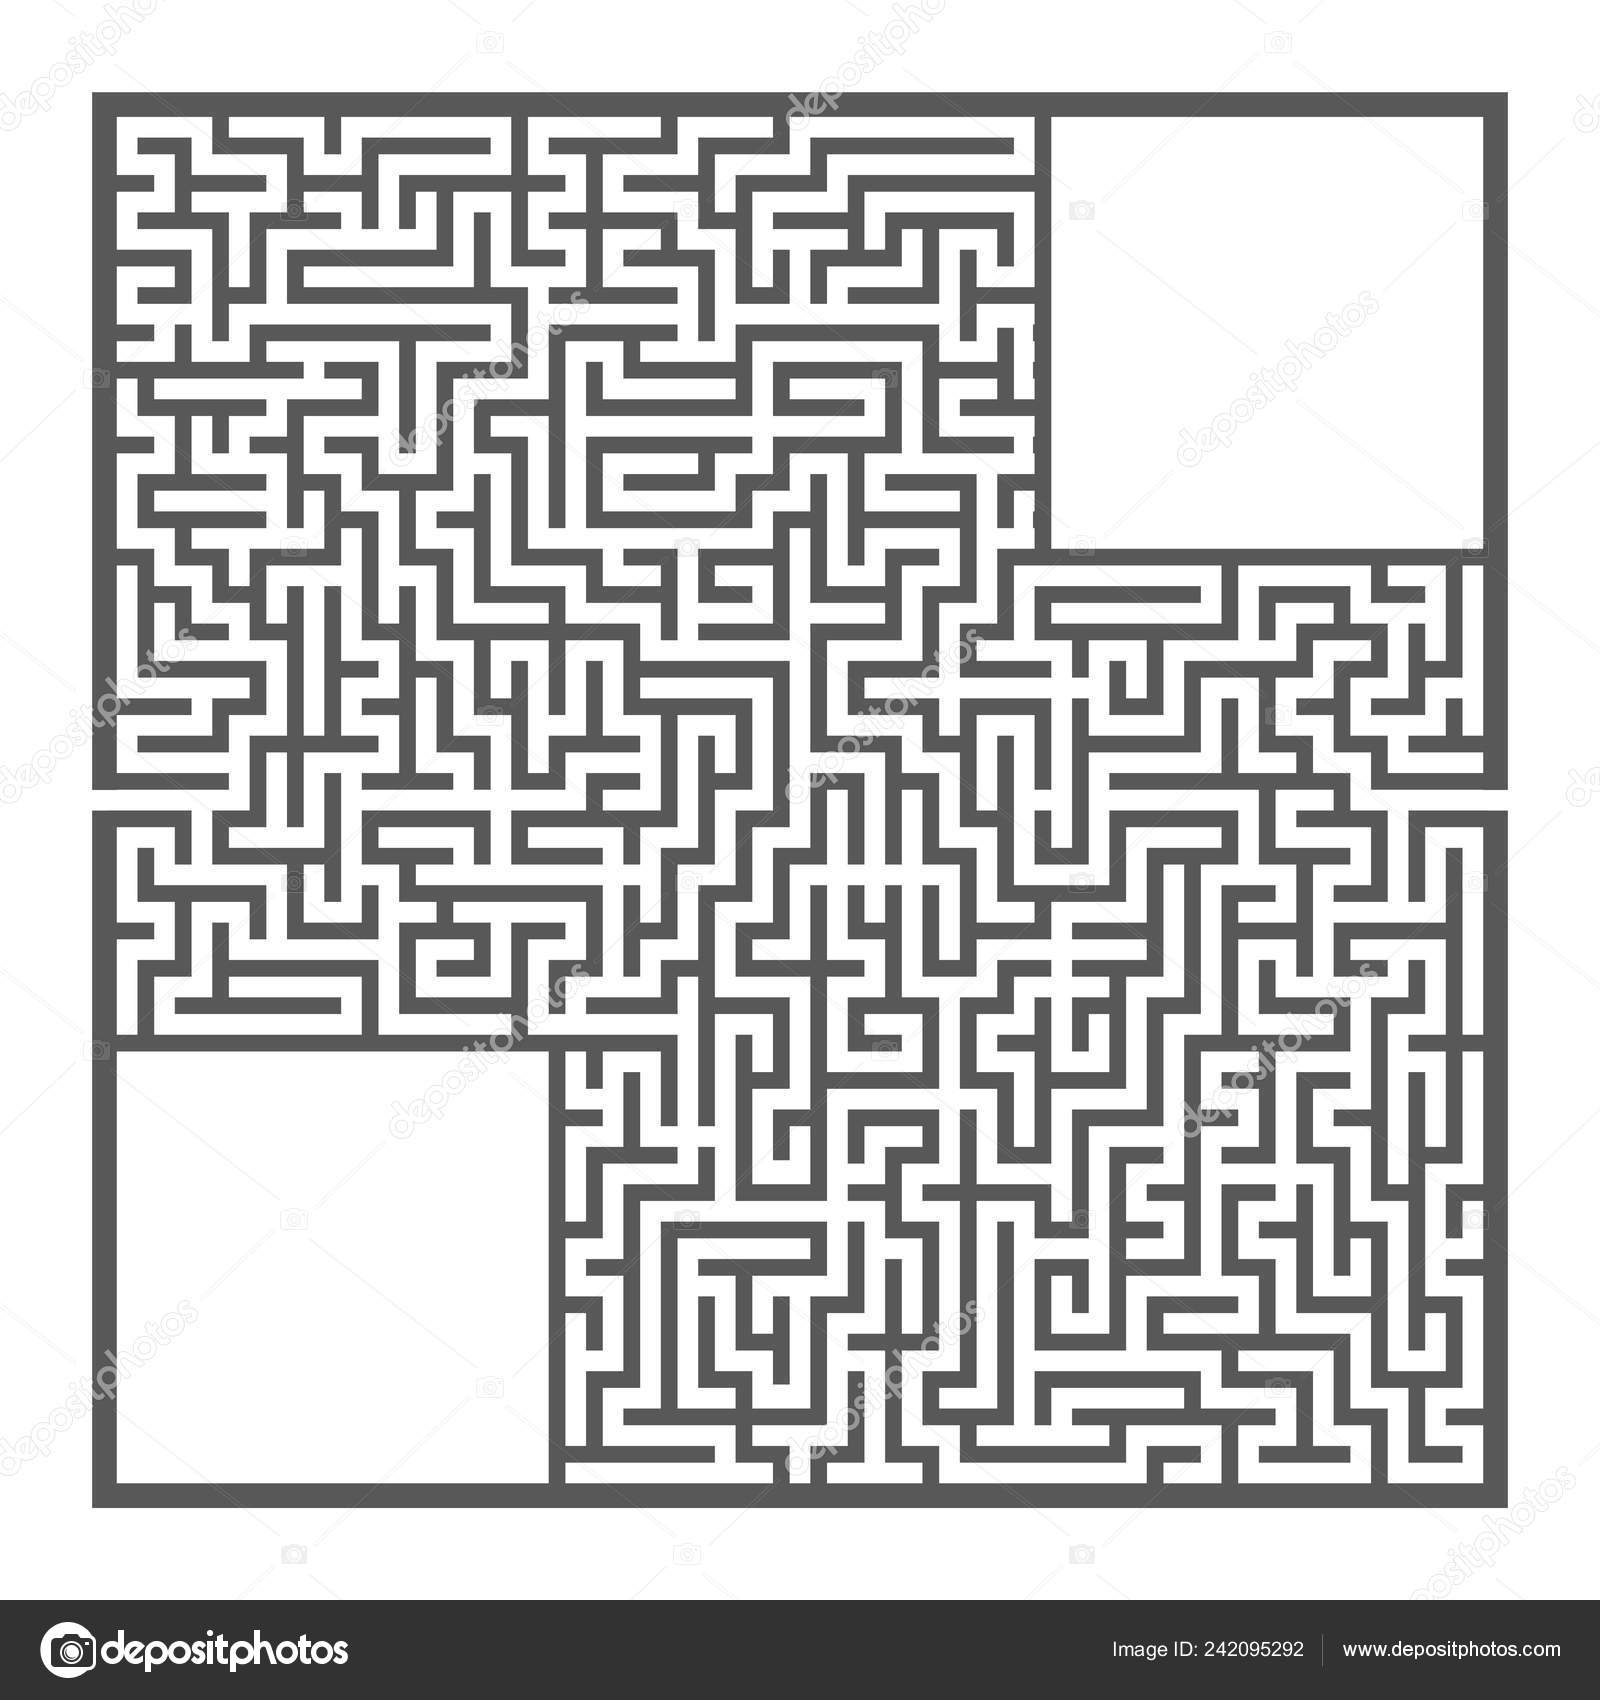 Difficult Large Square Maze Game Kids Adults Puzzle Children avec Labyrinthe Difficile